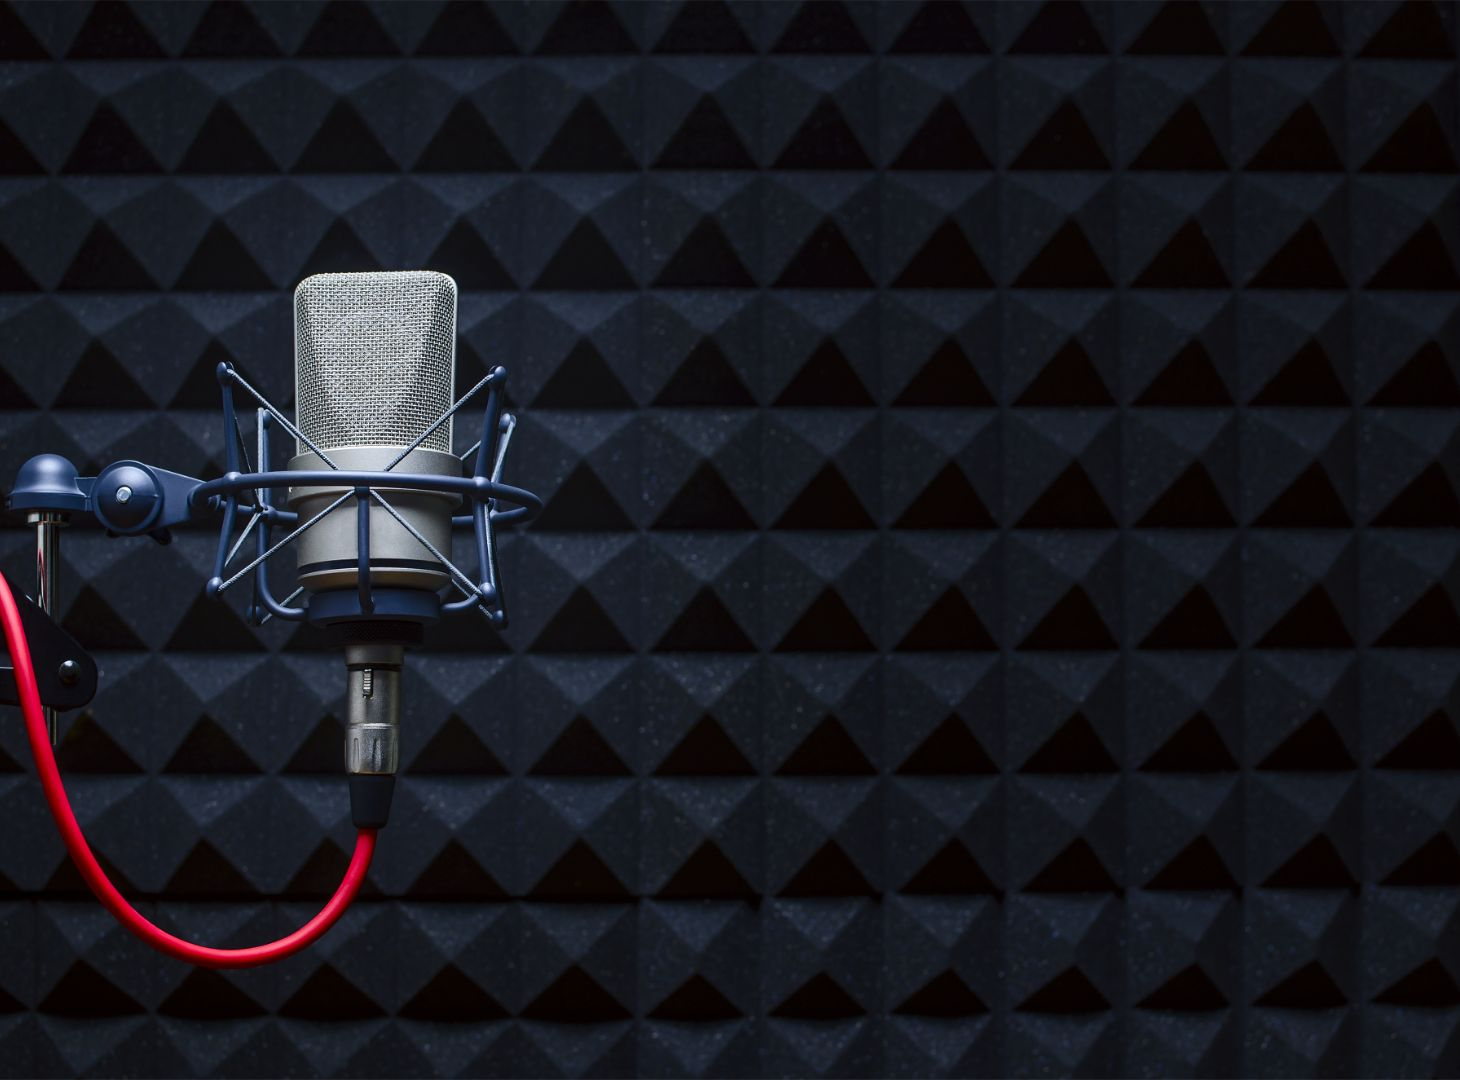 Image of microphone infront of a black background